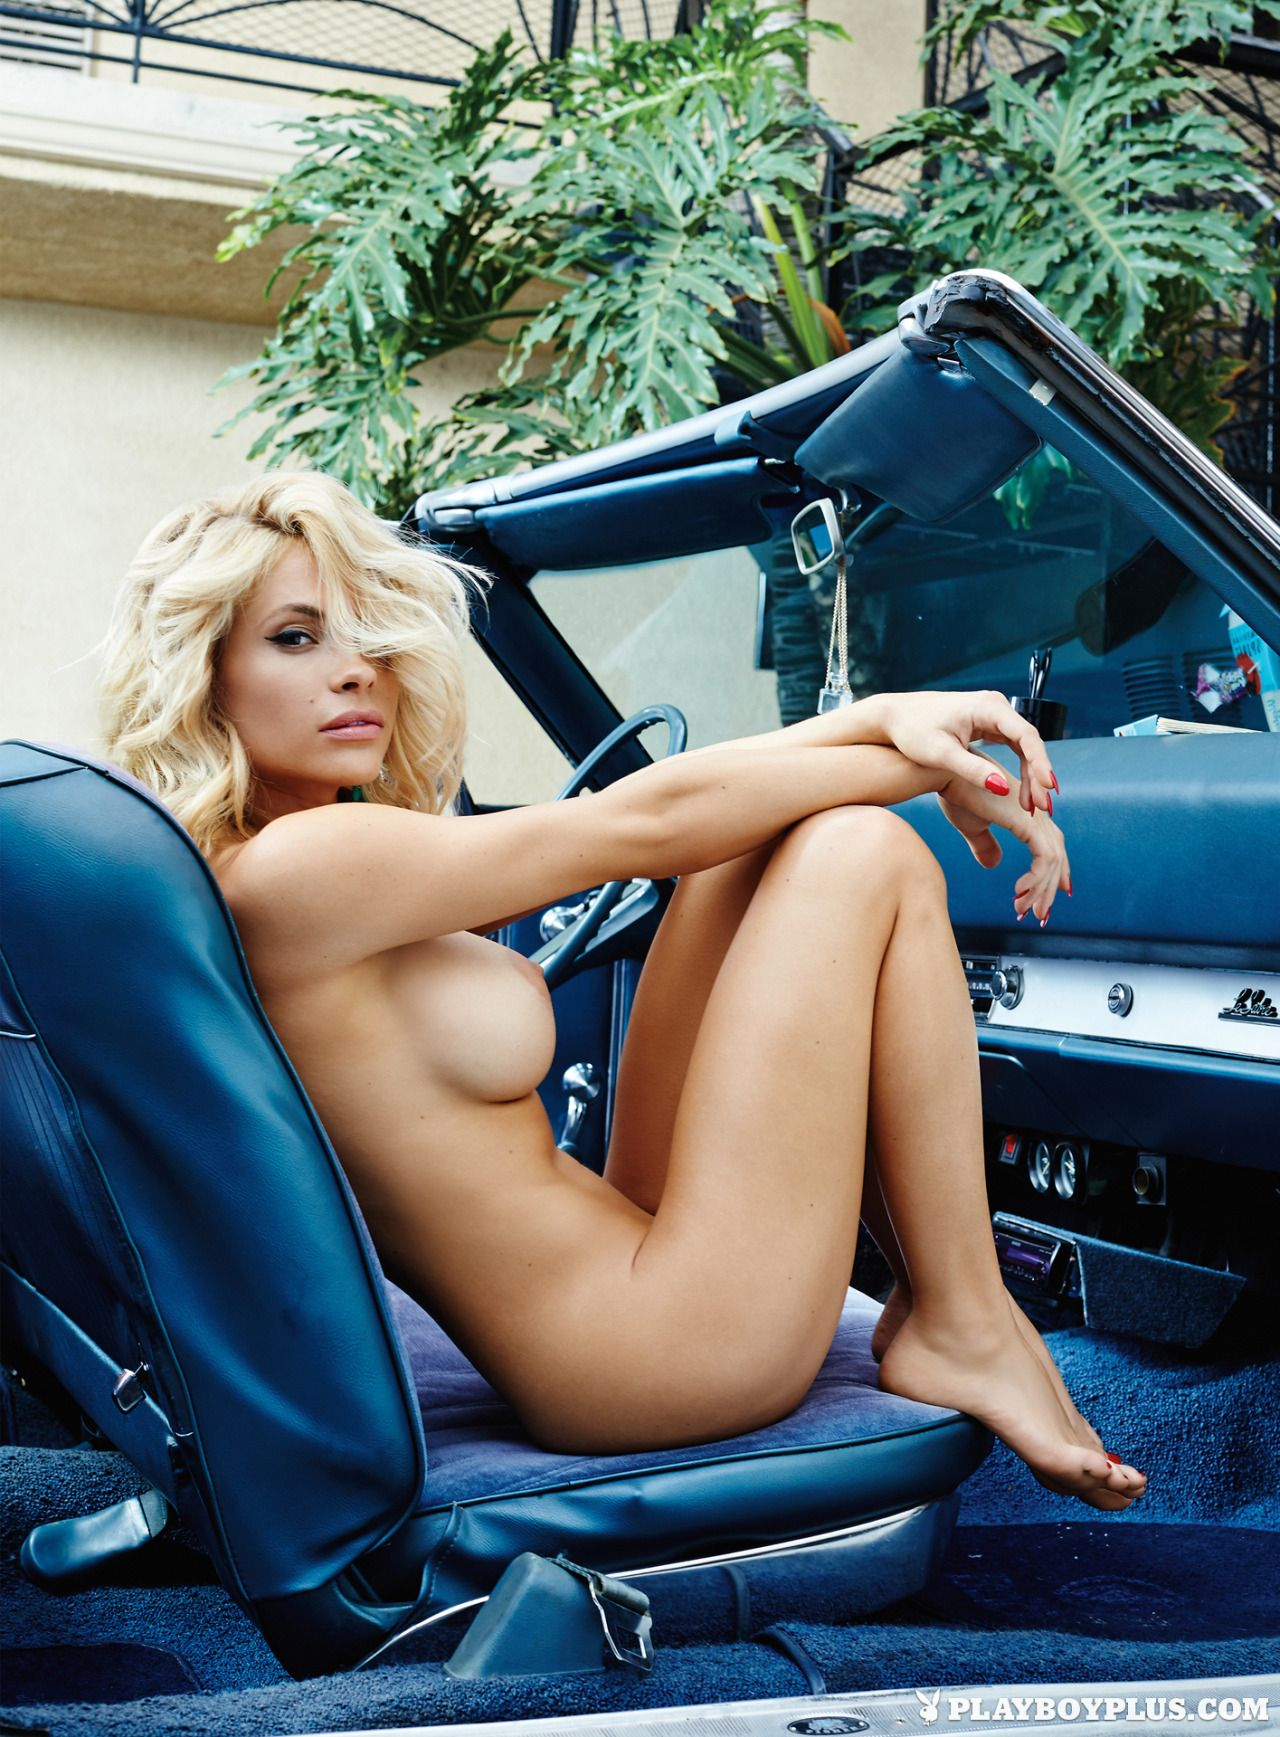 fast-car-and-girls-naked